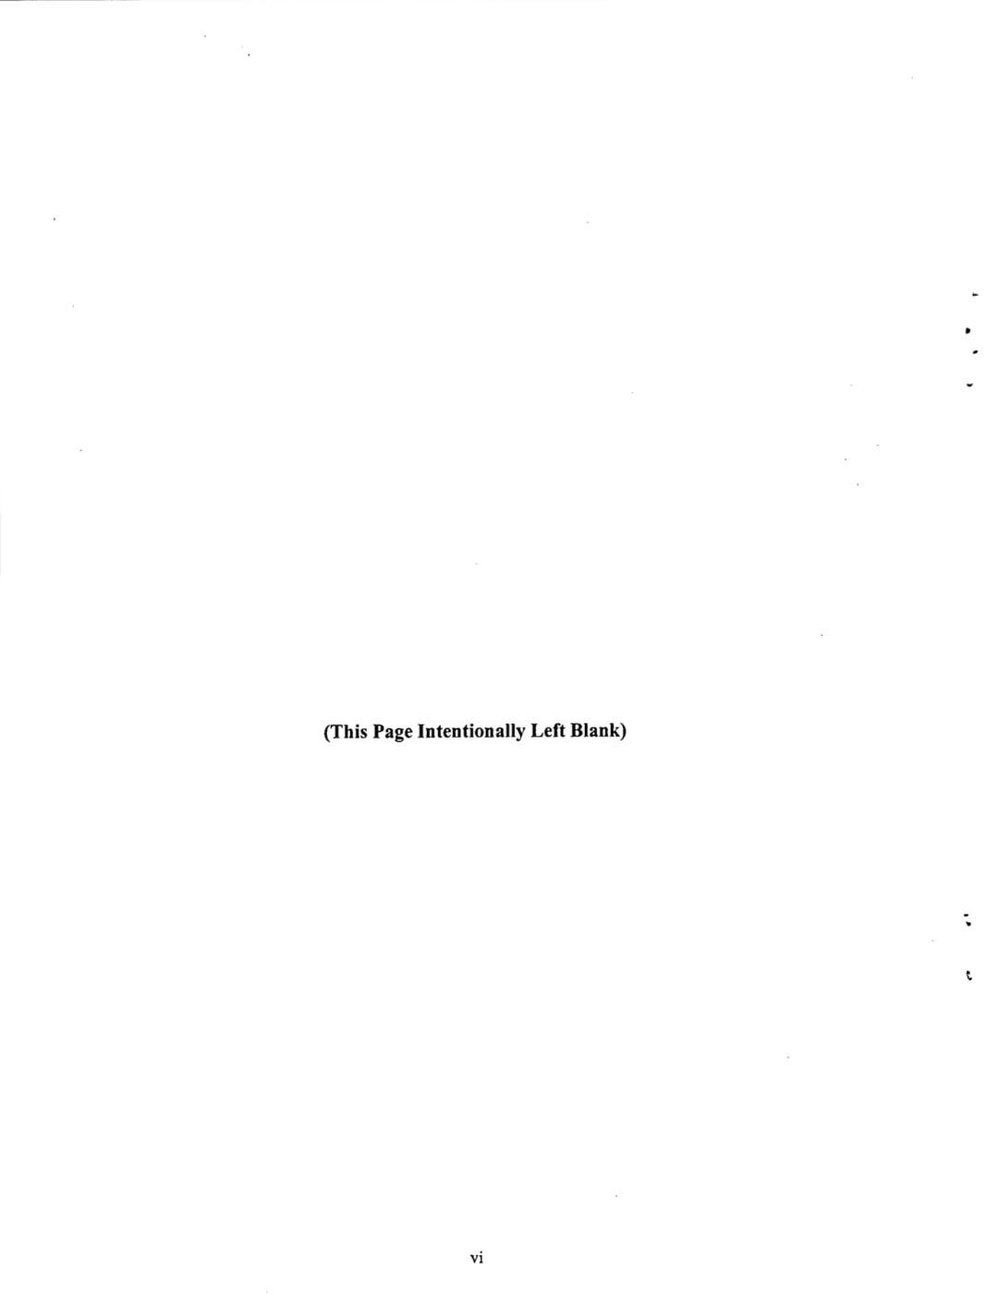 24_This Page Intentionally Left Blank #3.jpg